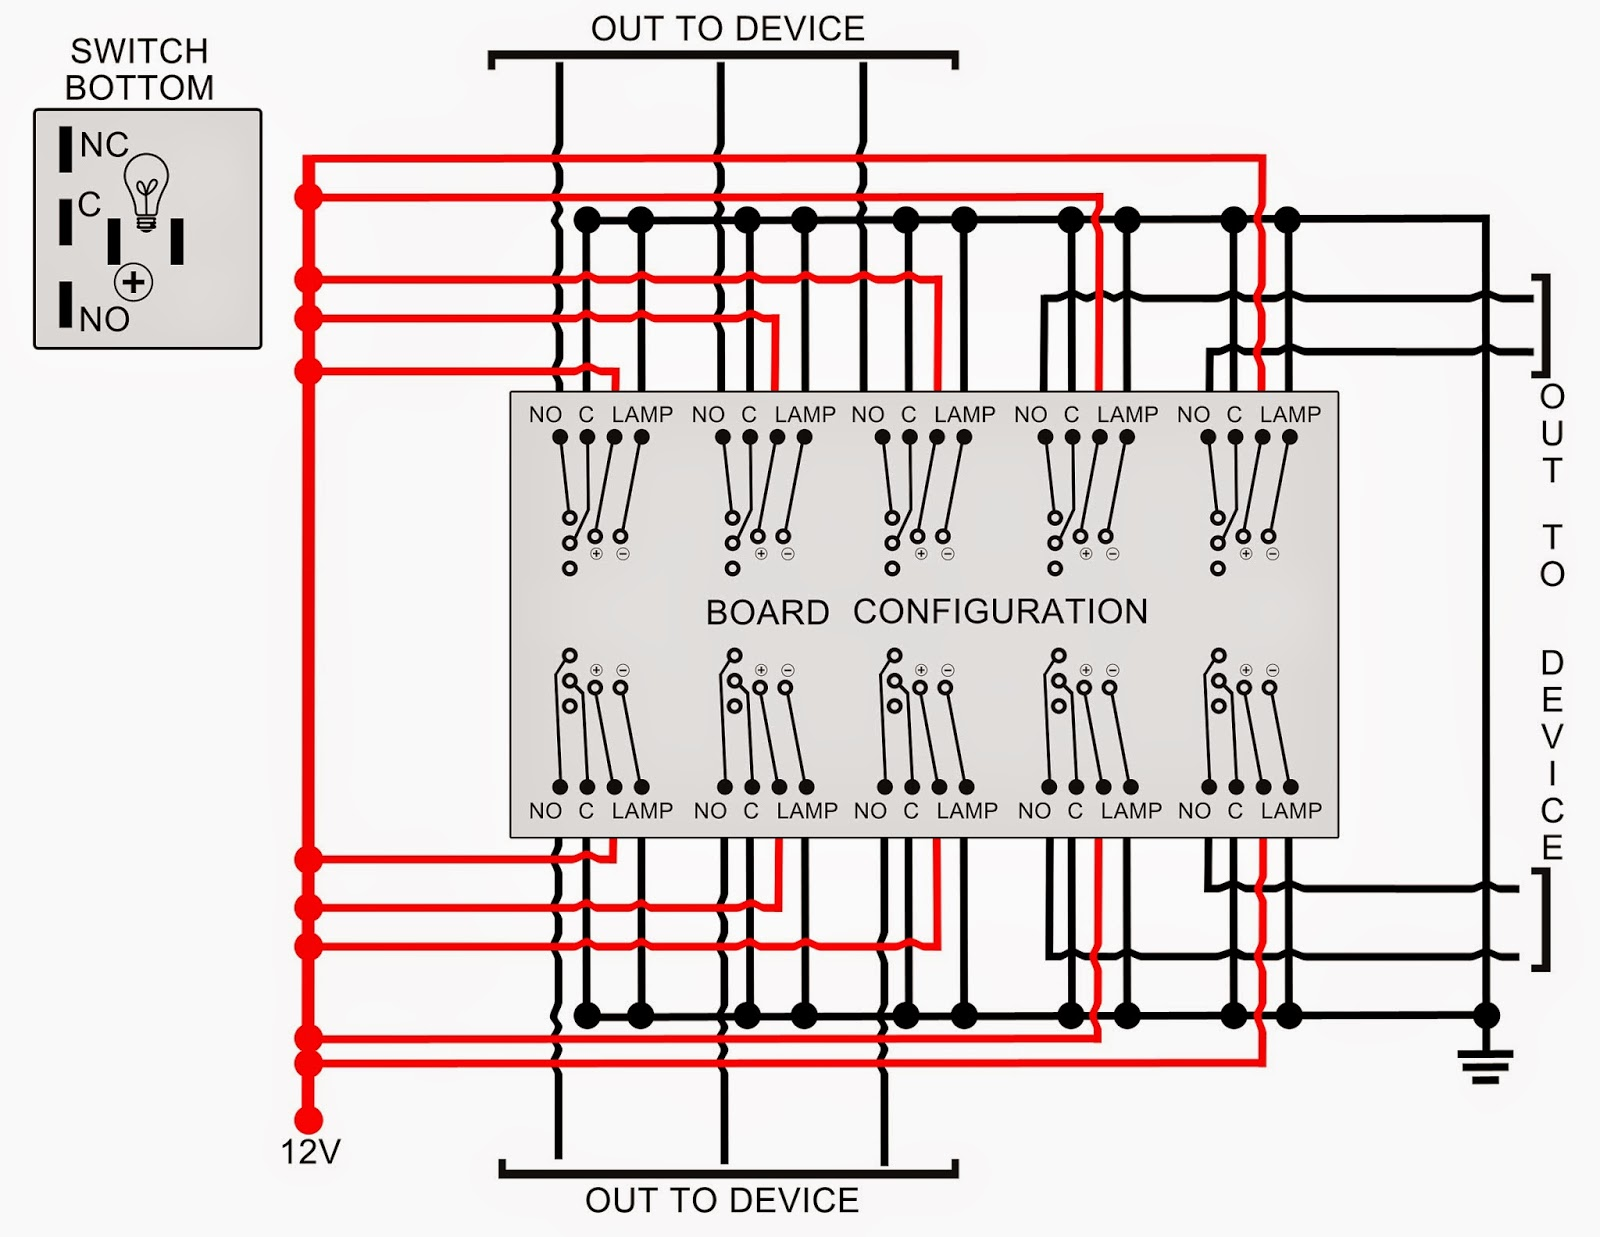 12v rocker switch wiring diagram 1977 fj40 my knight rider 2000 project diagrams and schematics